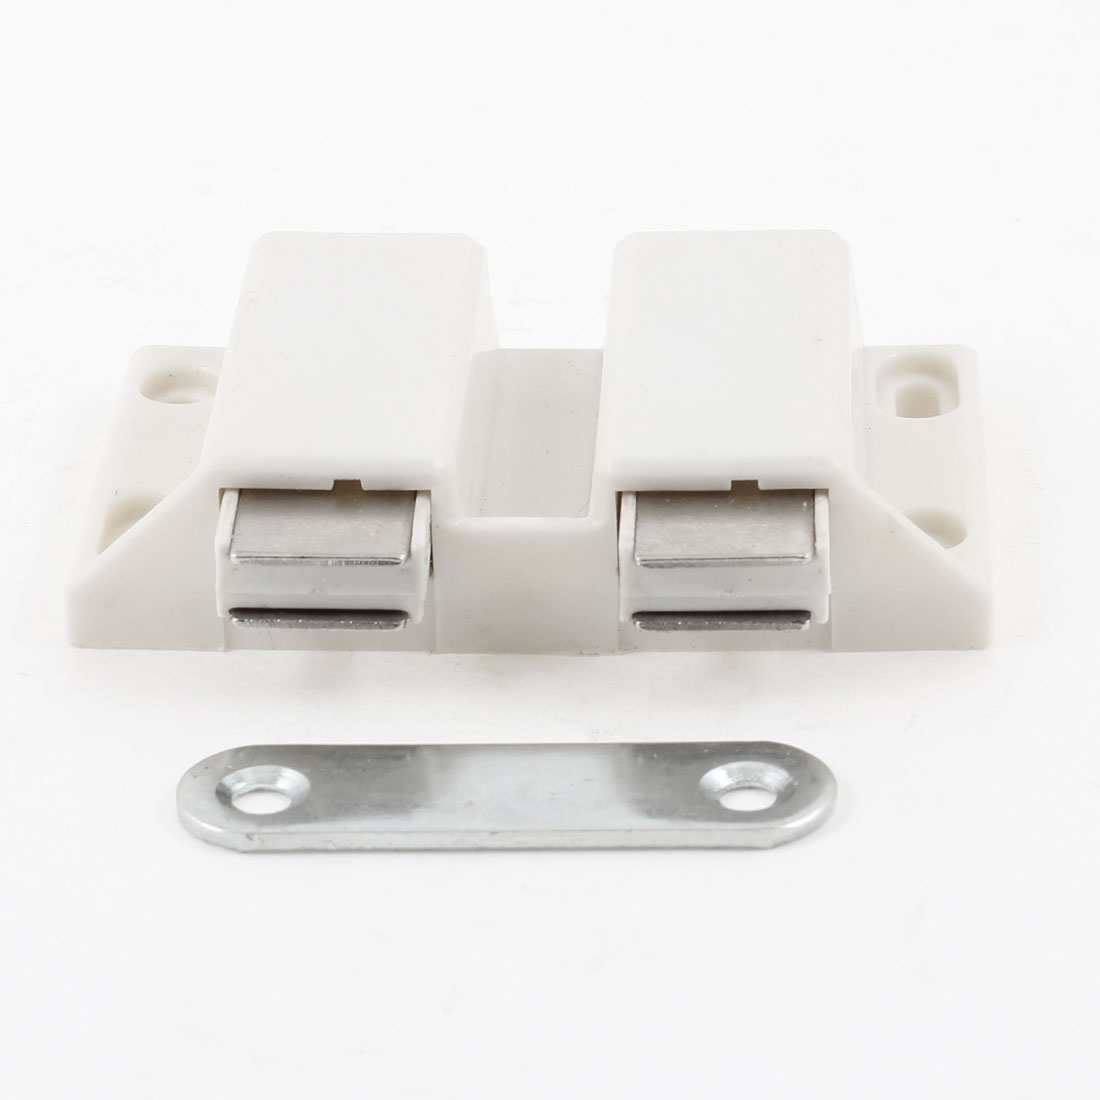 6.6cm Width Double Touch Press Door Magnetic Catch Latch White